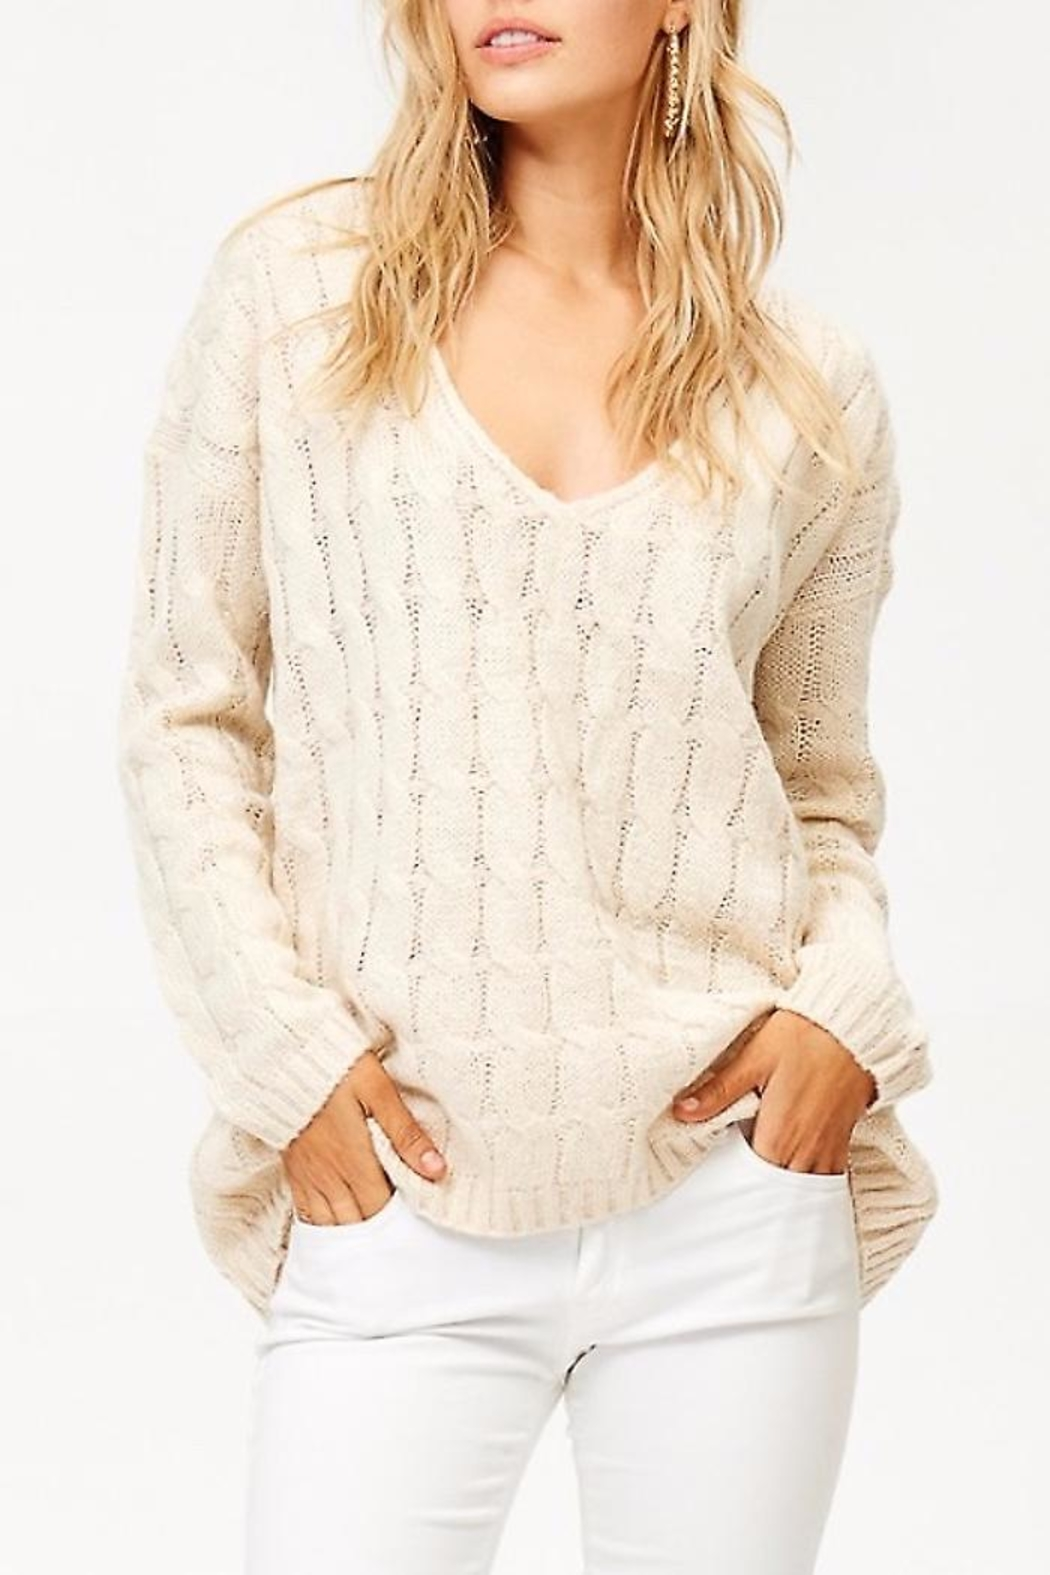 People Outfitter v-Neck Knit Sweater - Main Image